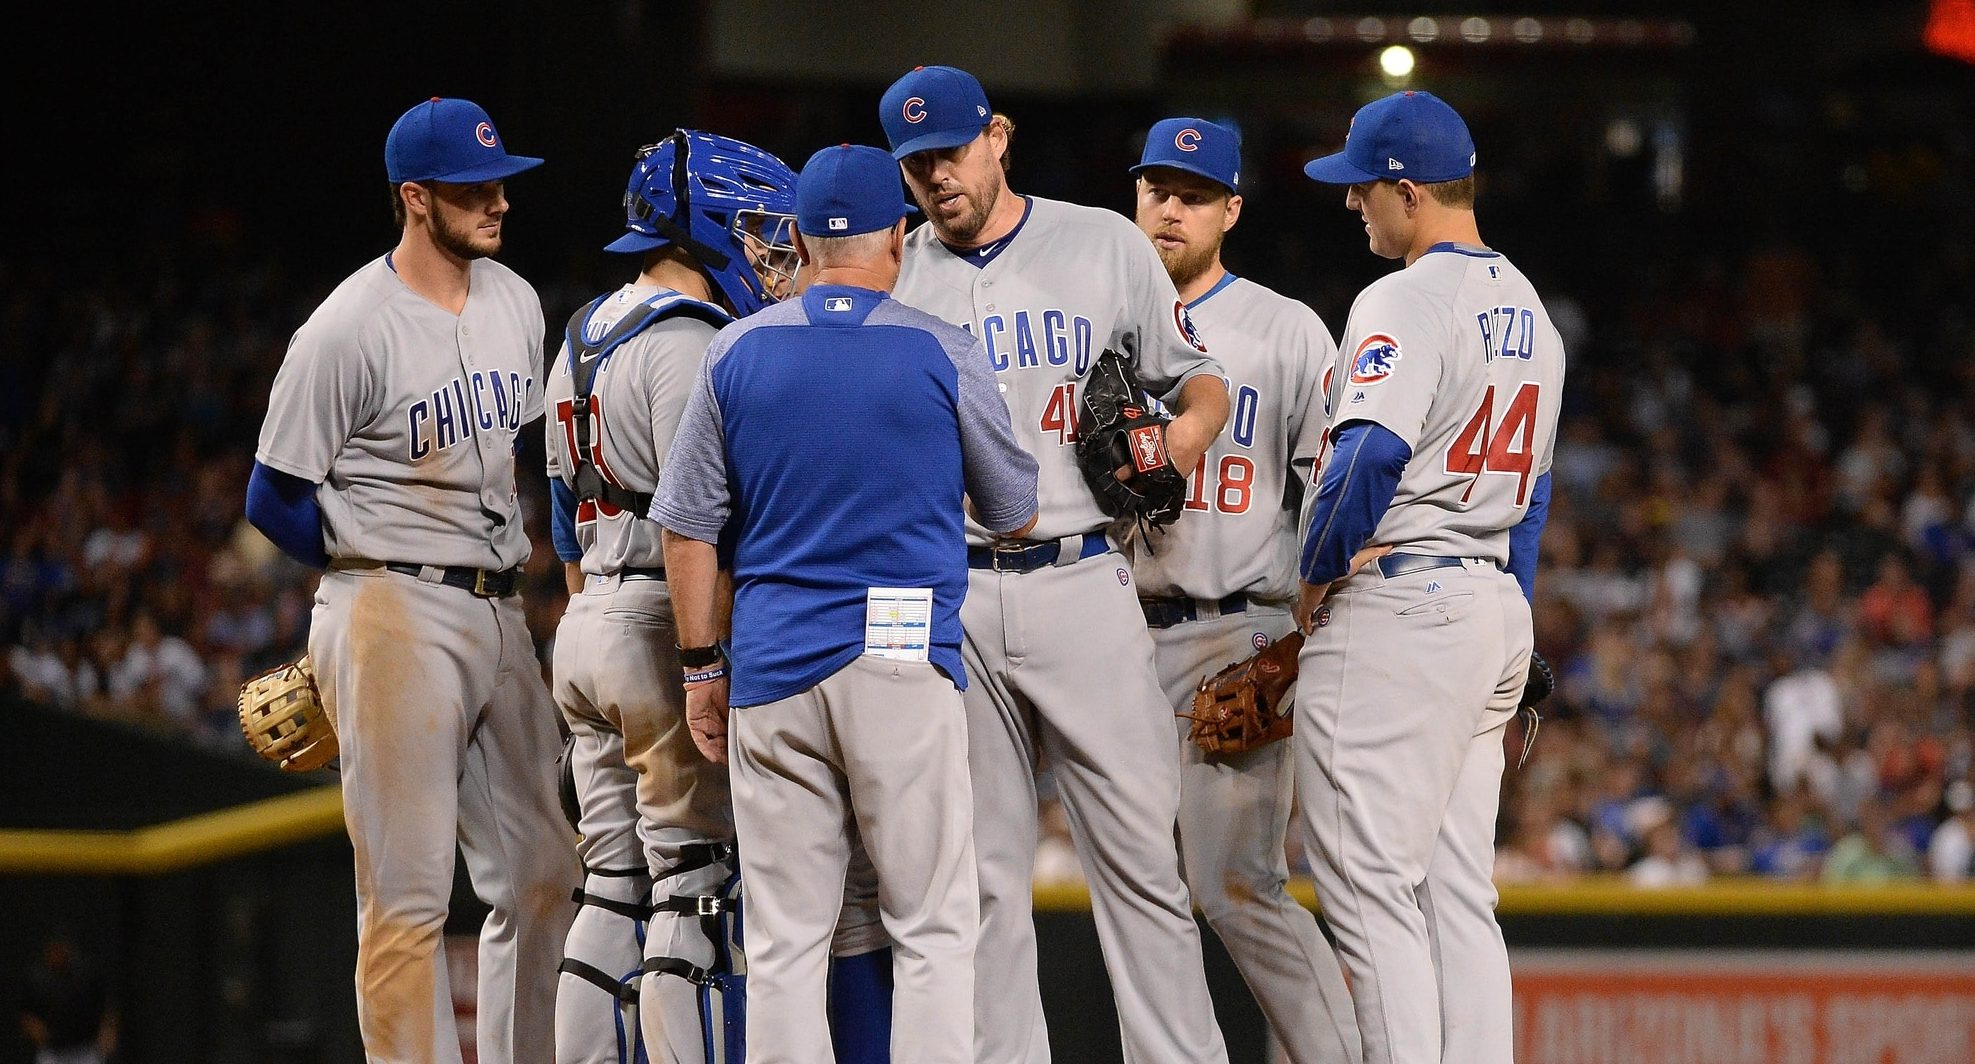 John Lackey keeping his Cubs friends in first place